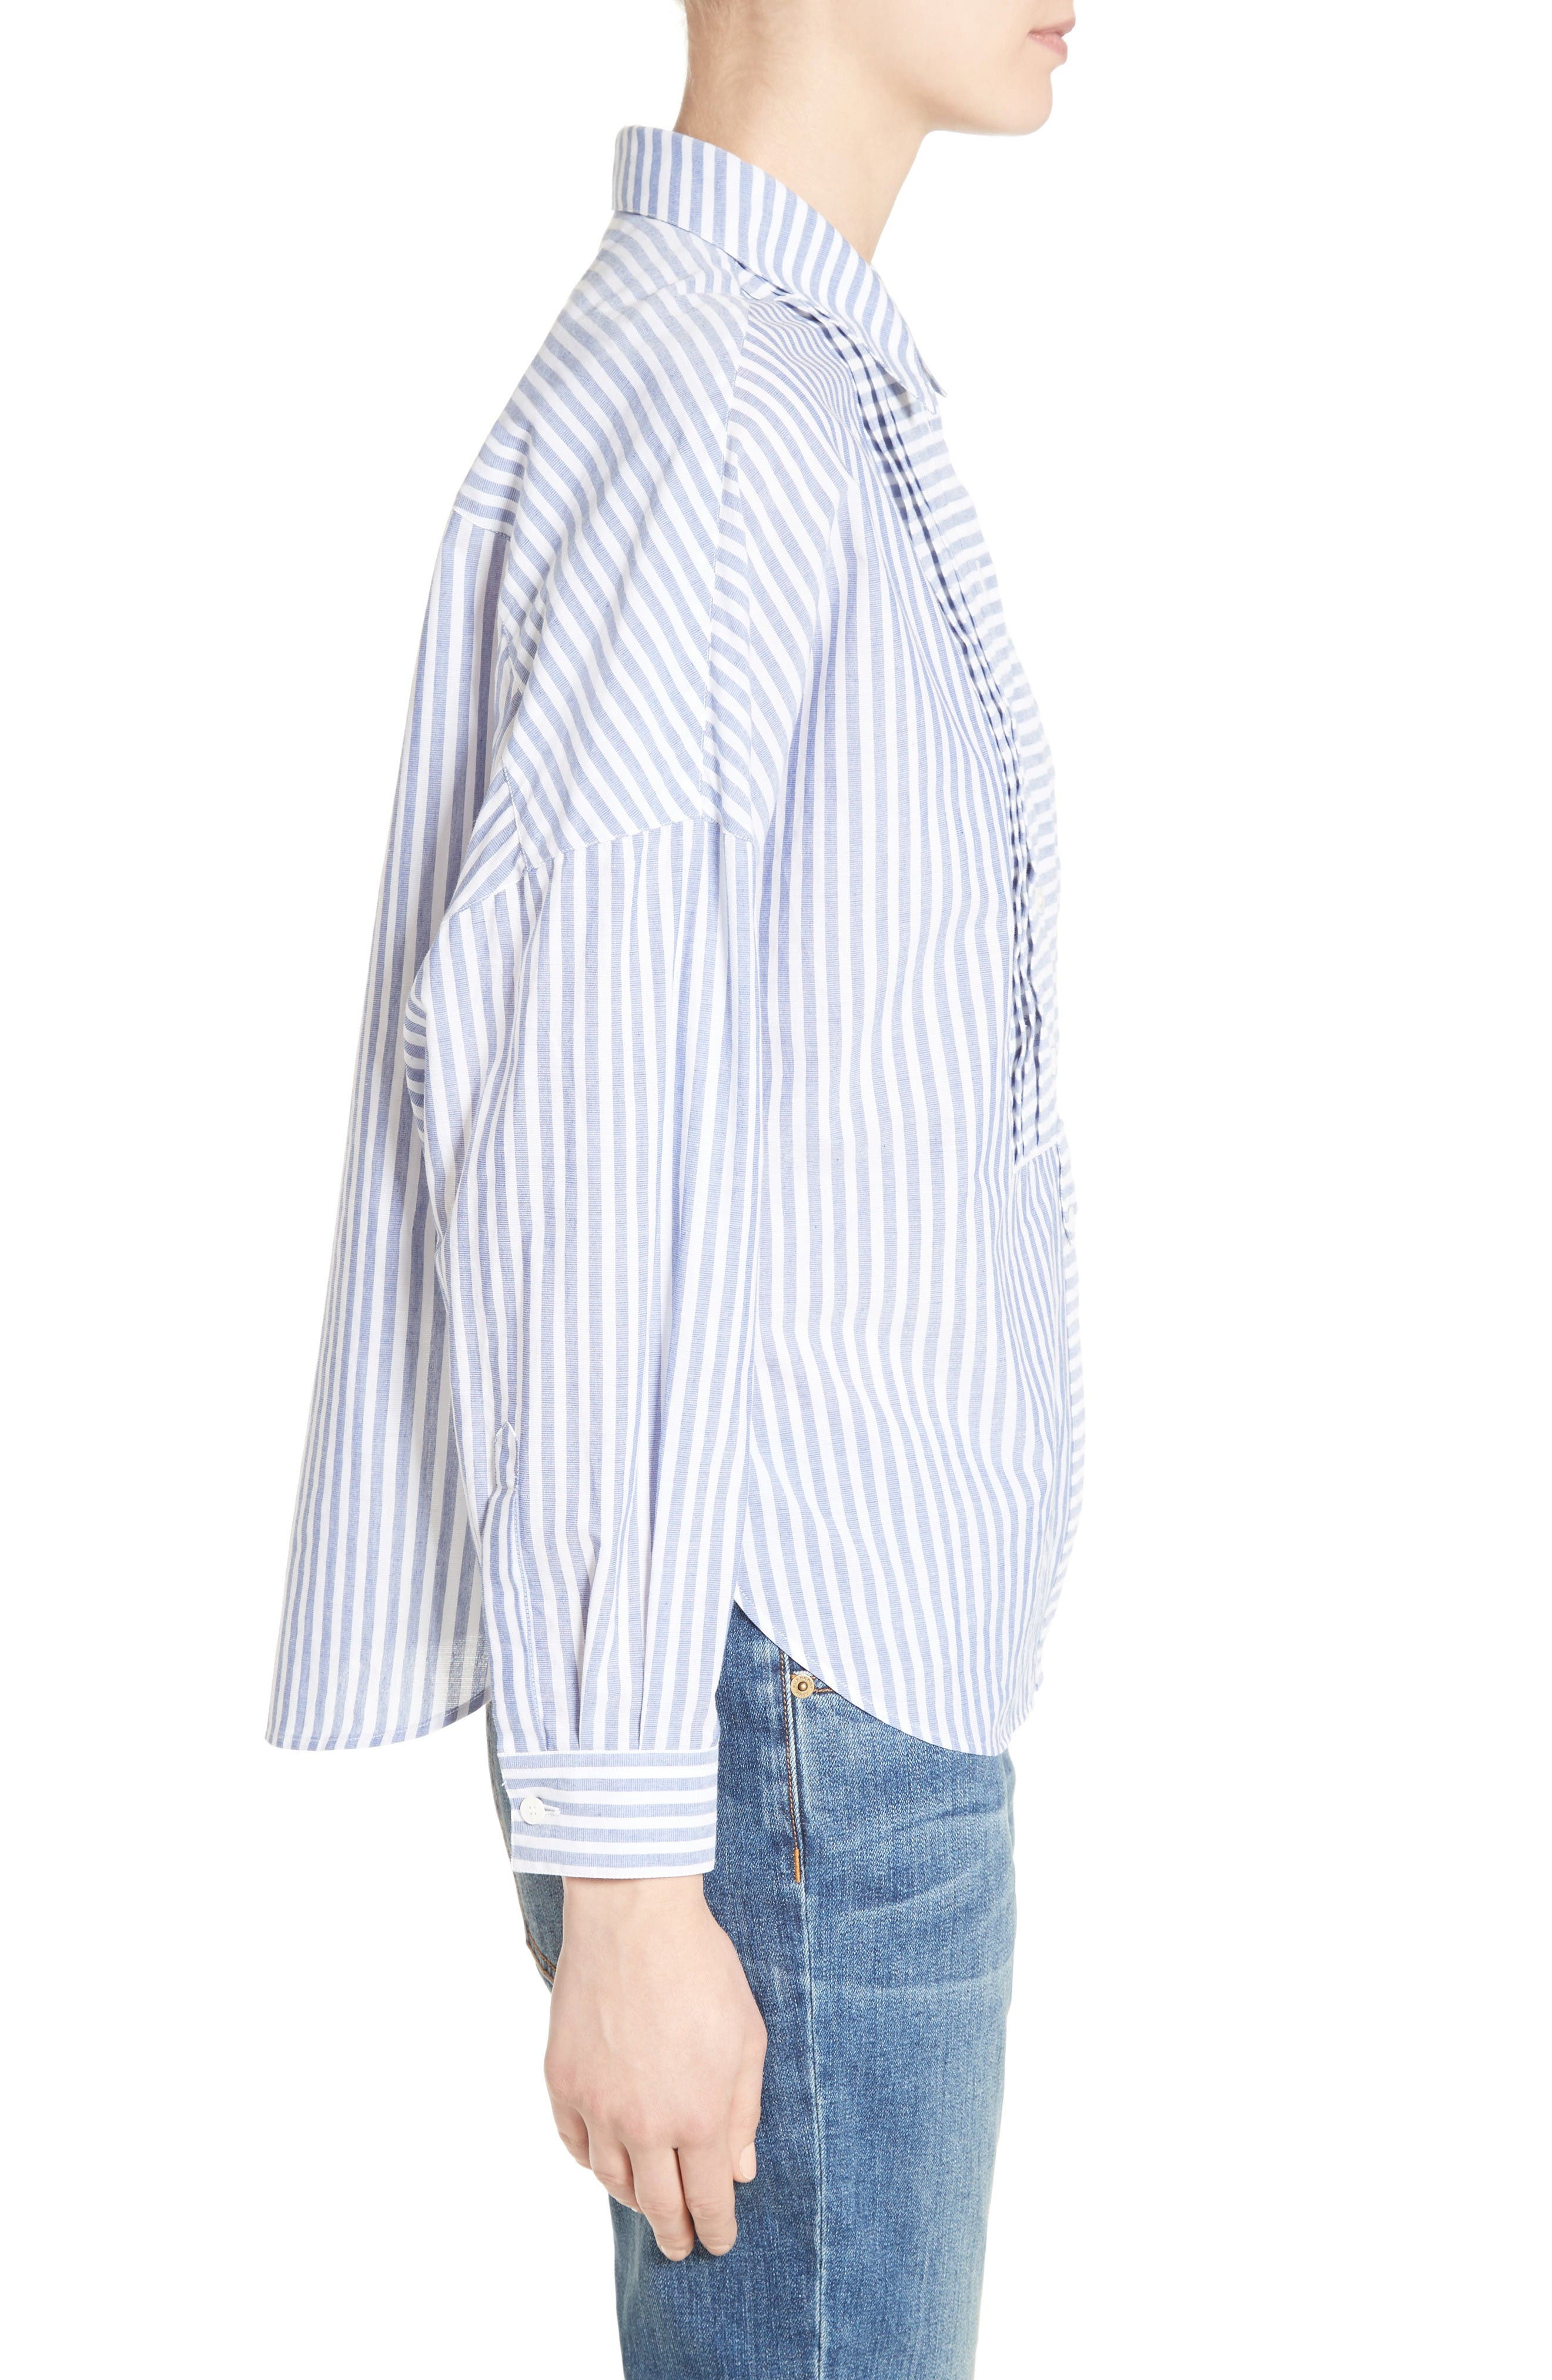 Posy Stripe Bib Boyfriend Shirt,                             Alternate thumbnail 5, color,                             Pale Blue/ White